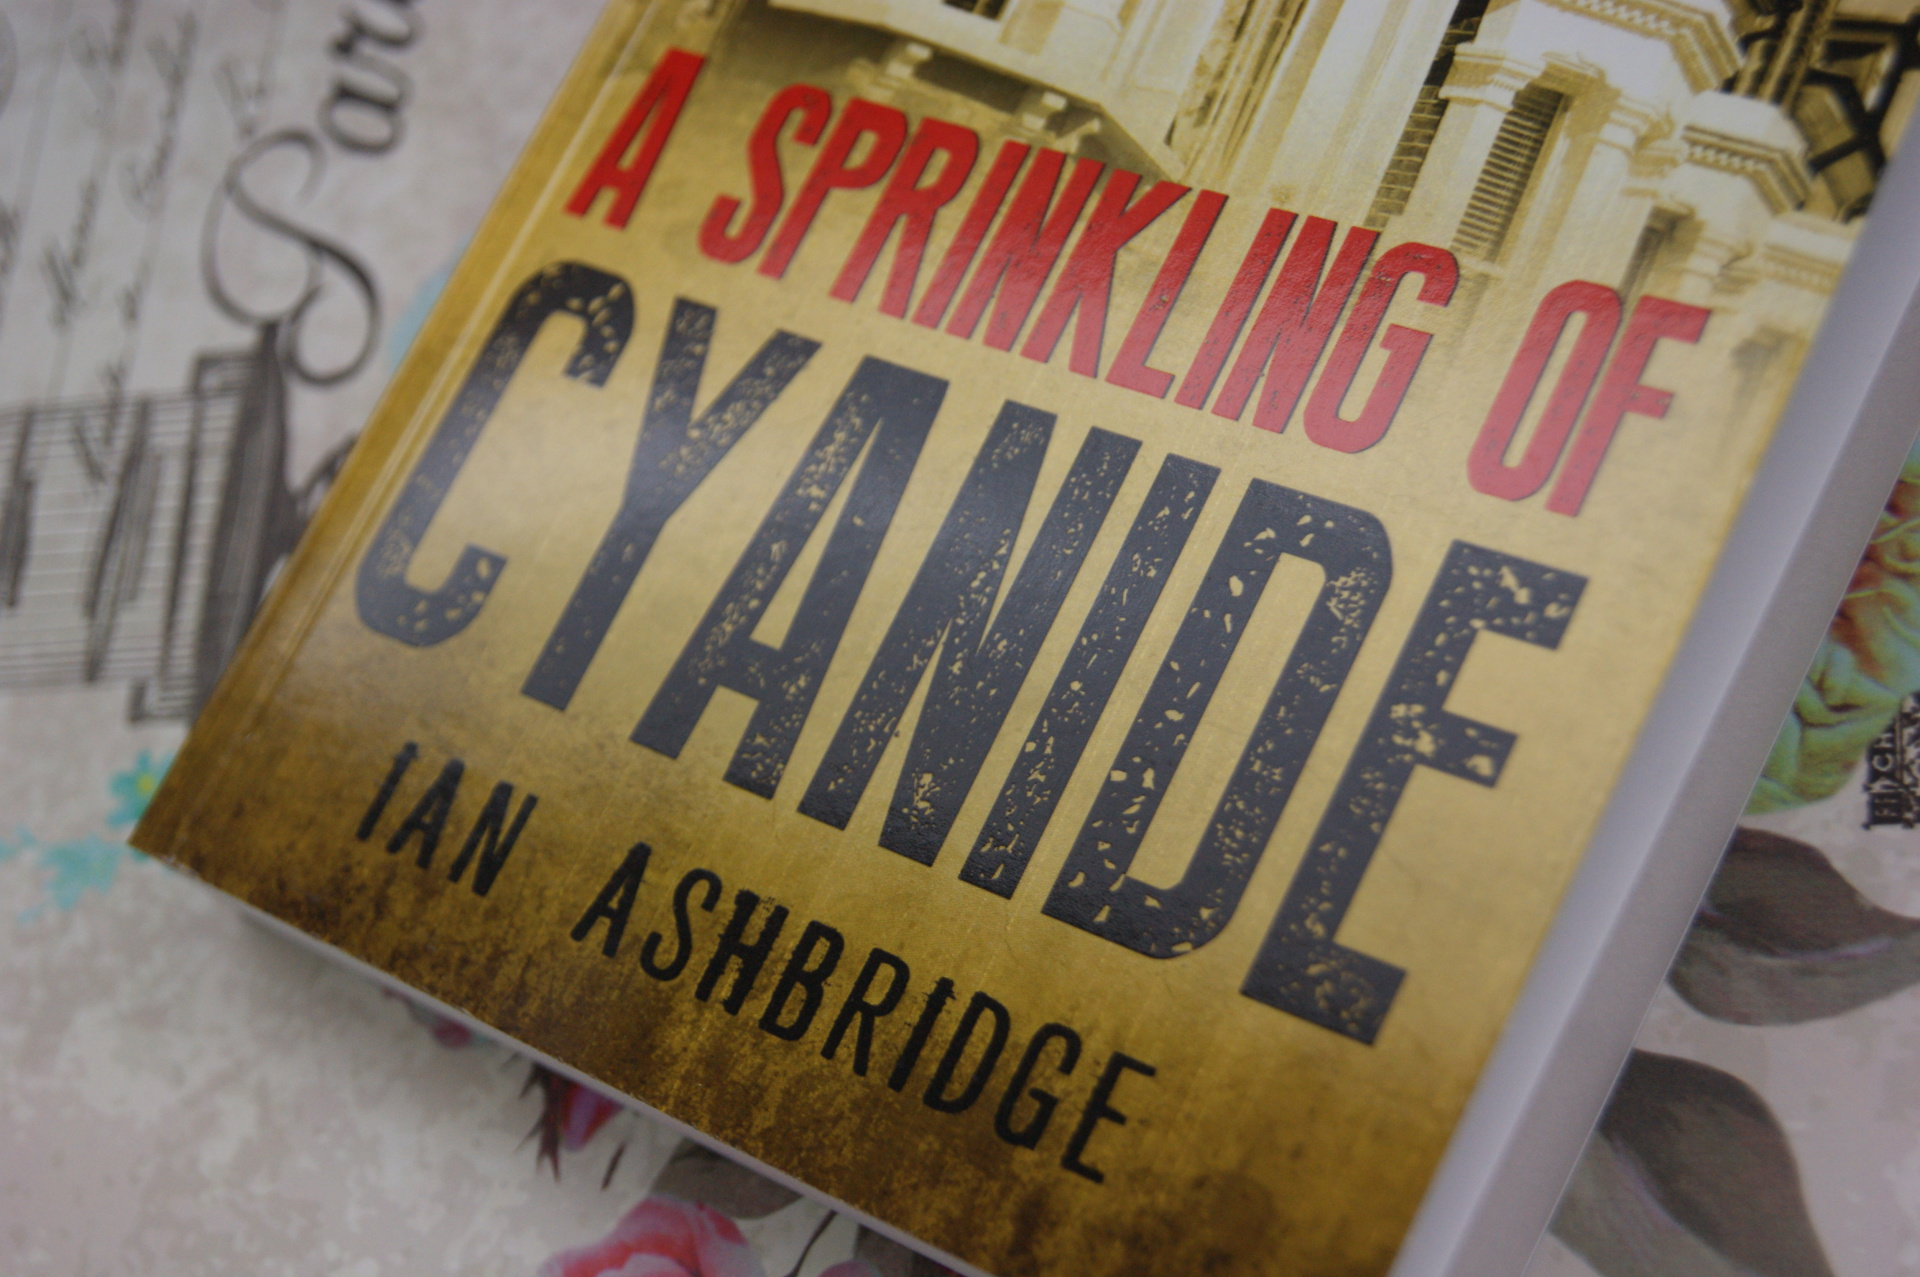 A Sprinkling of Cyanide - Book Review